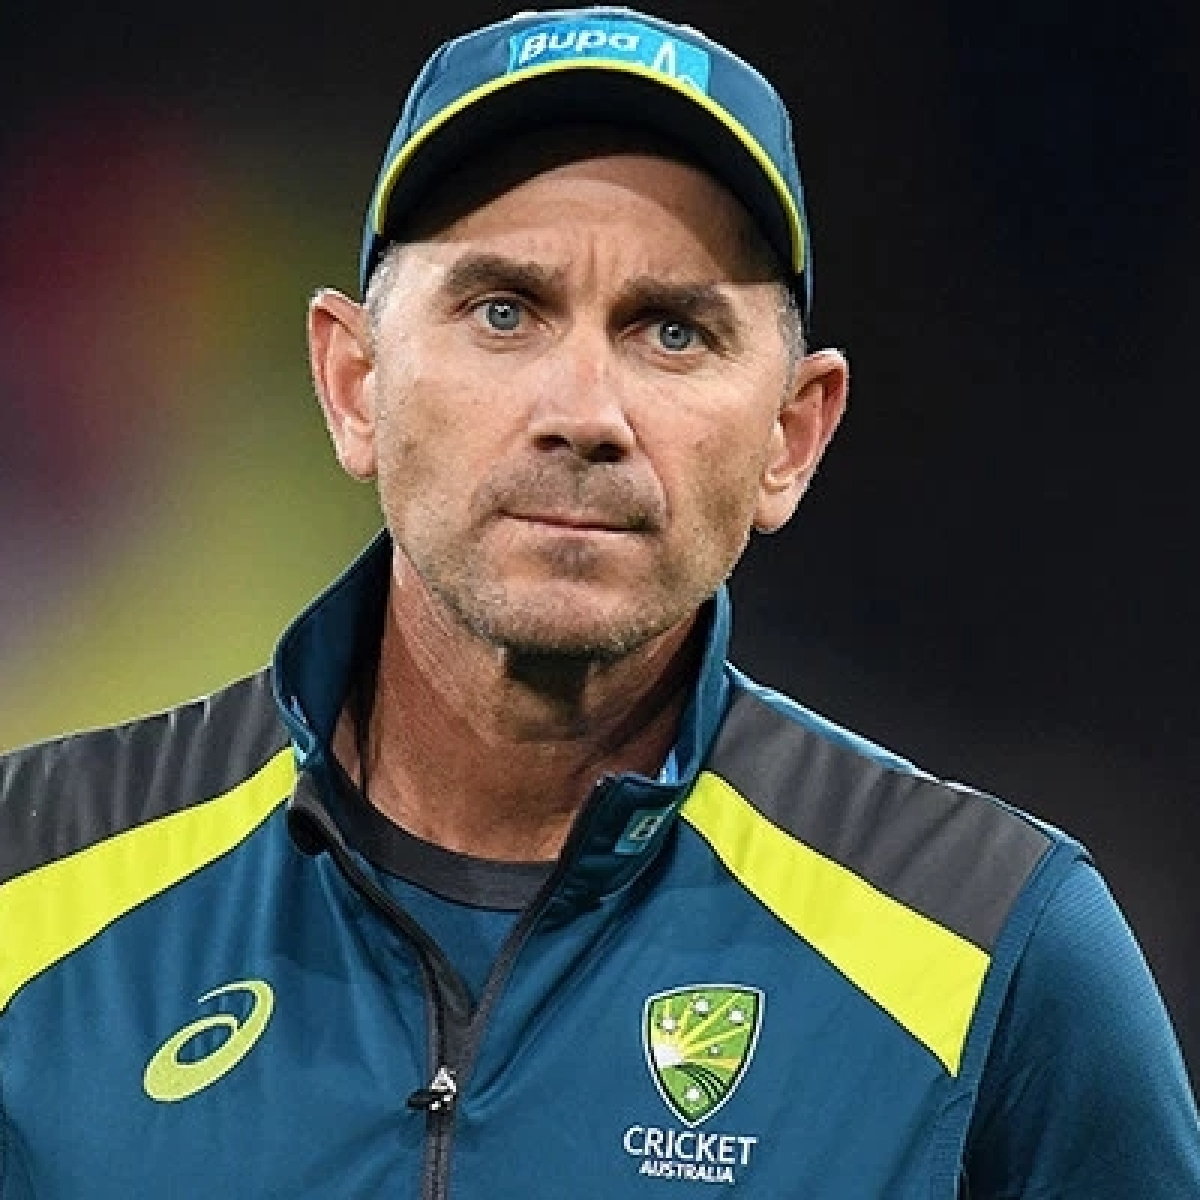 Plenty of hand sanitizers in Aussie kits: Coach Justin Langer insists on handshakes amid coronavirus scare